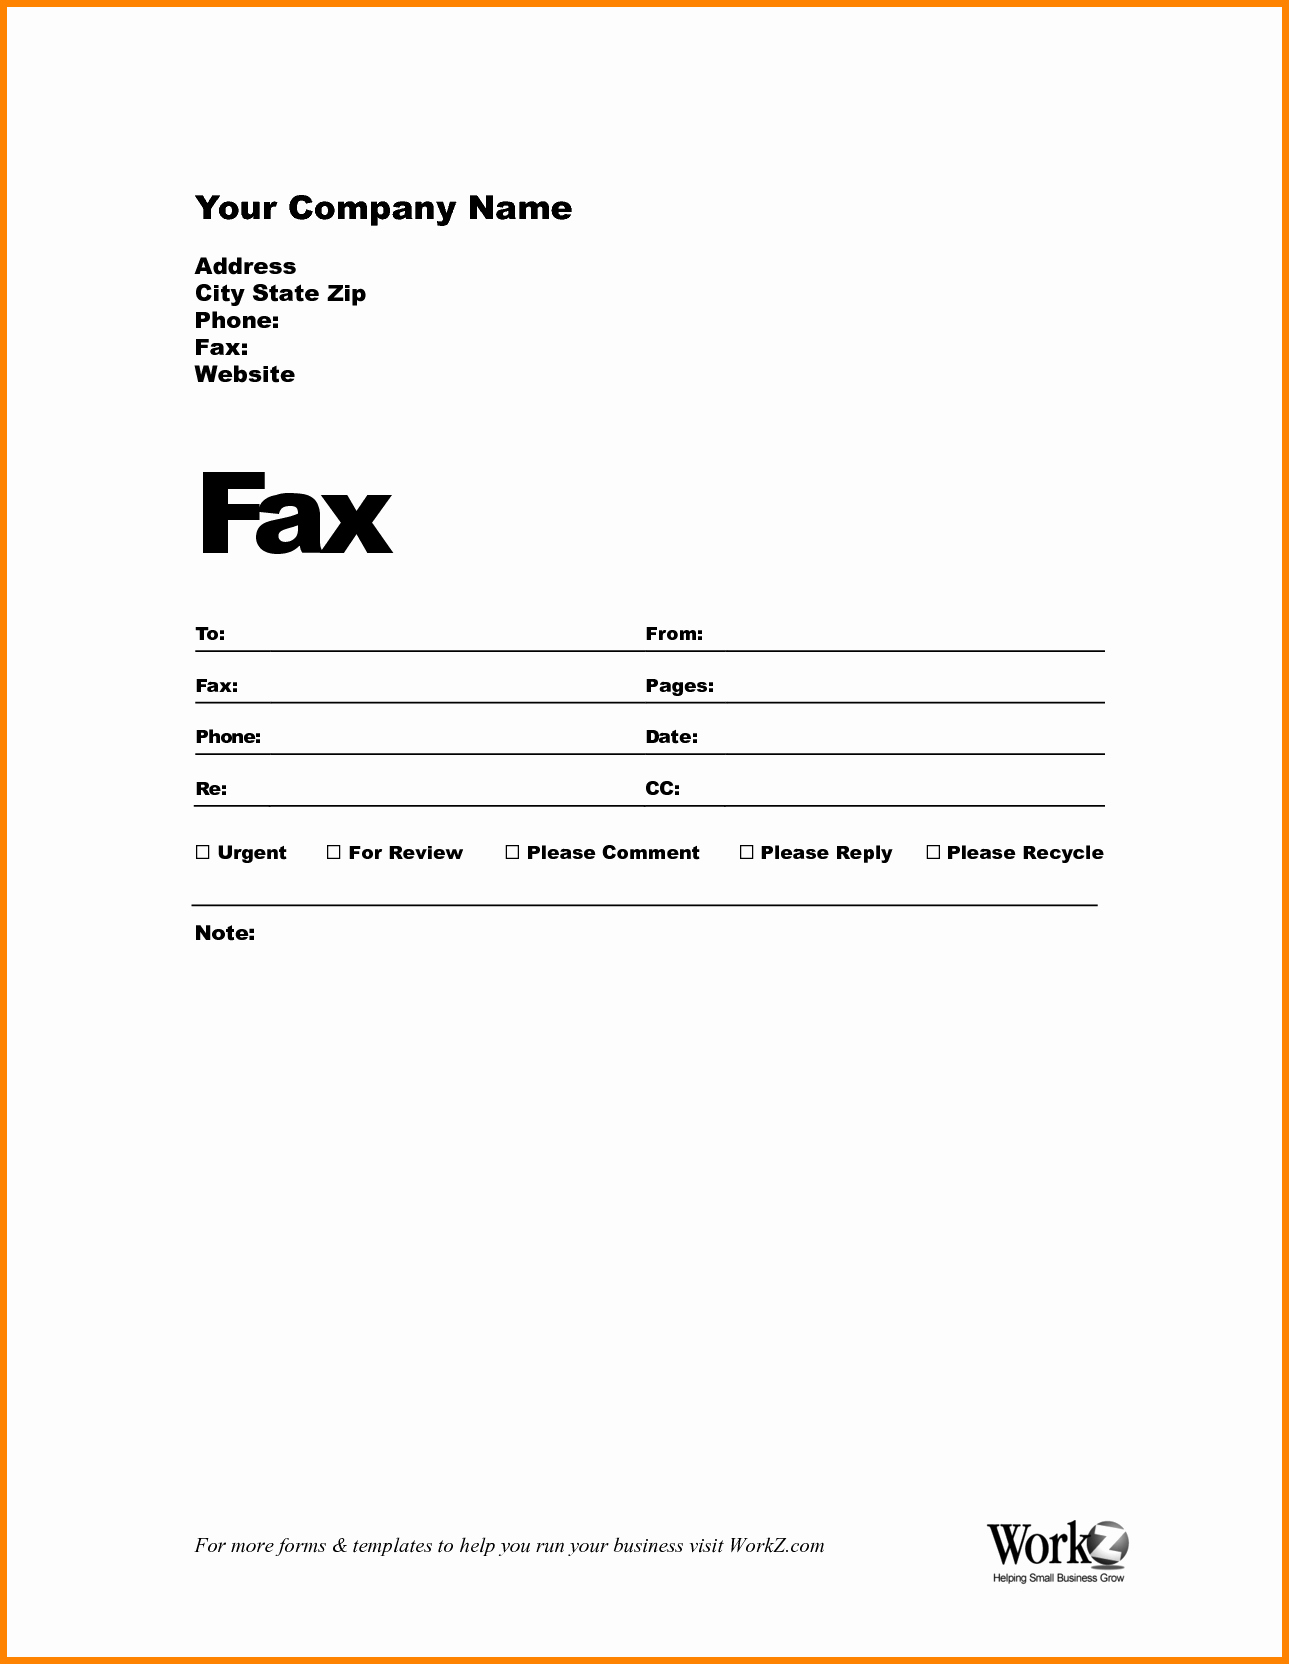 Printable Blank Fax Cover Sheet Best Of 7 Blank Fax Cover Sheet Template Word Best Ideas Fax